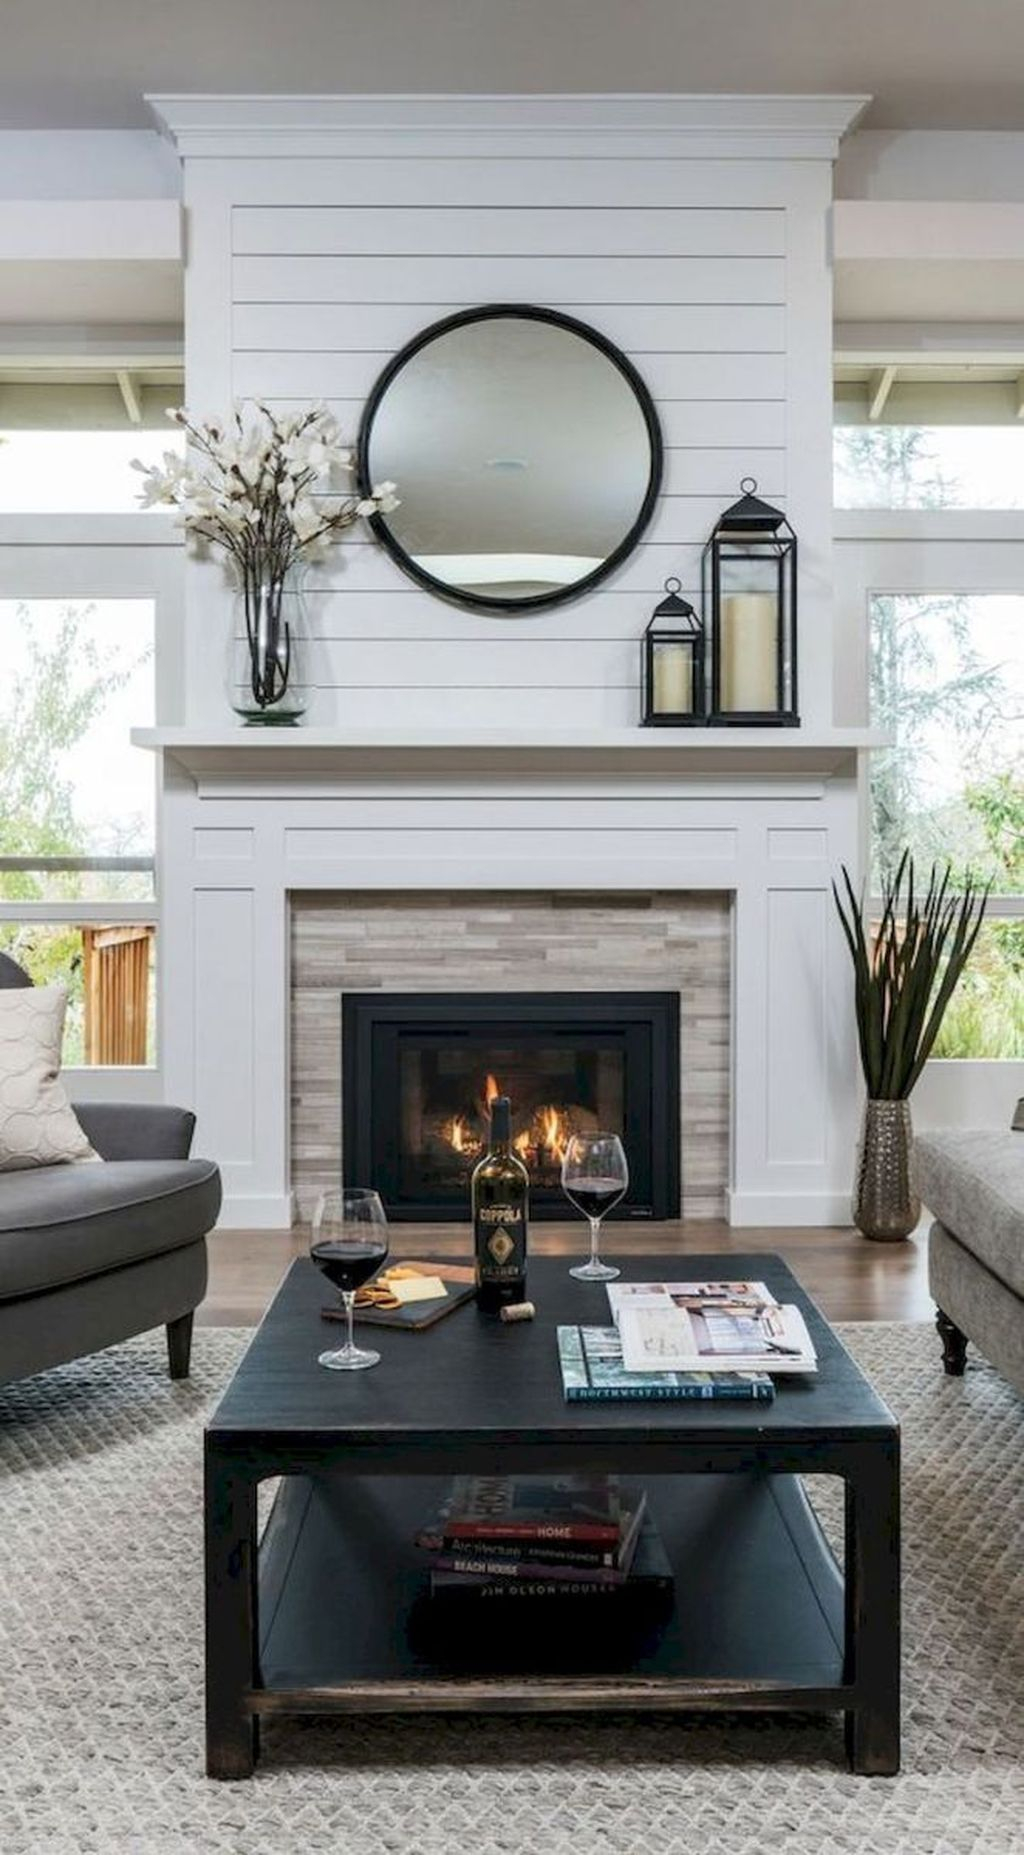 Admiring Fireplace Décor Ideas For Cottage To Try 45